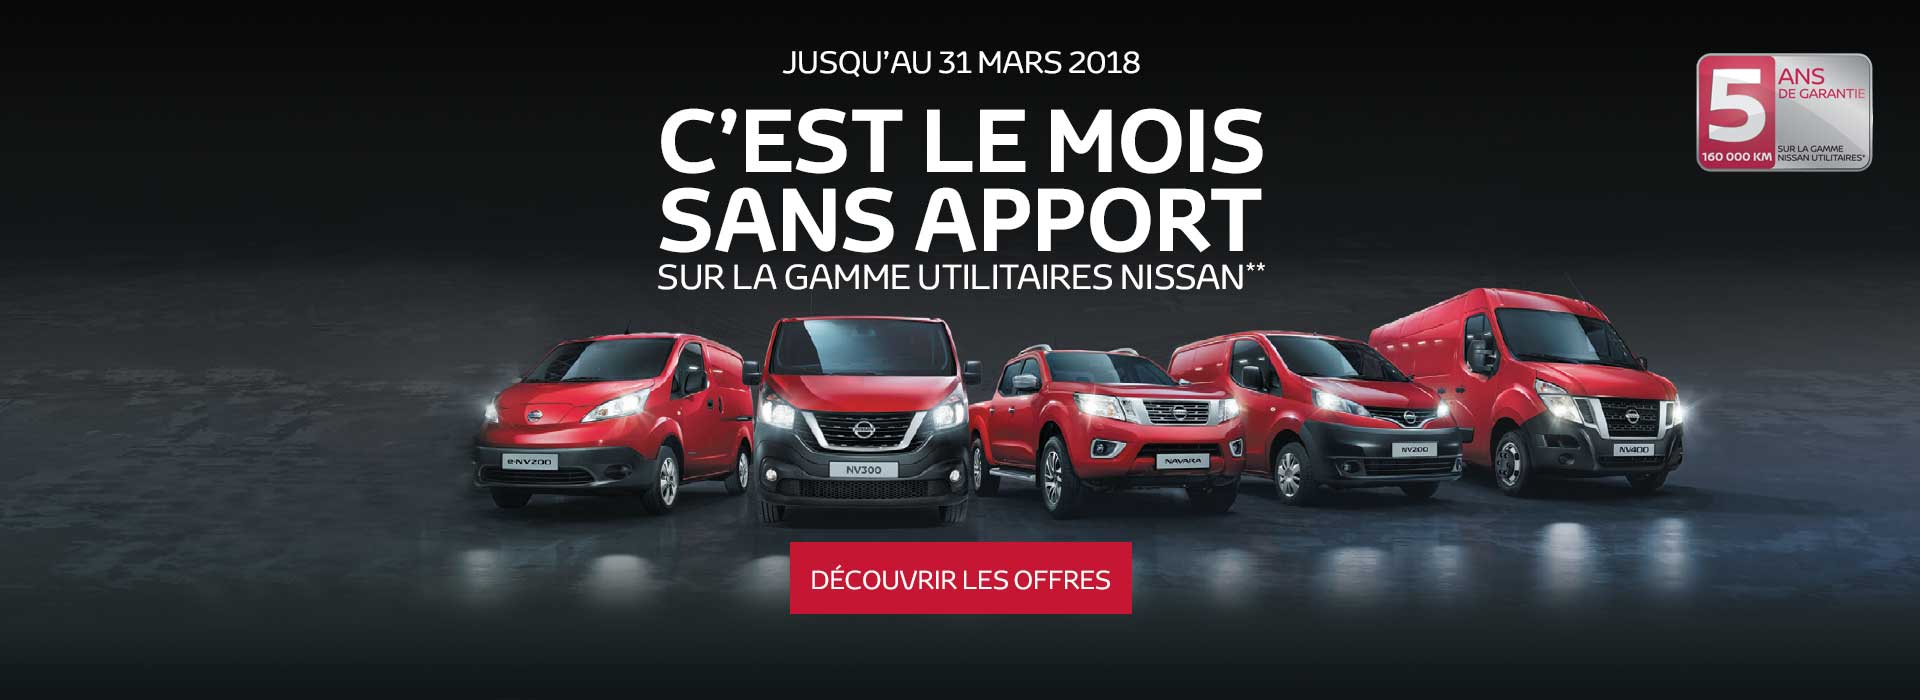 nissan nancy vente voiture neuve vehicule occasion. Black Bedroom Furniture Sets. Home Design Ideas